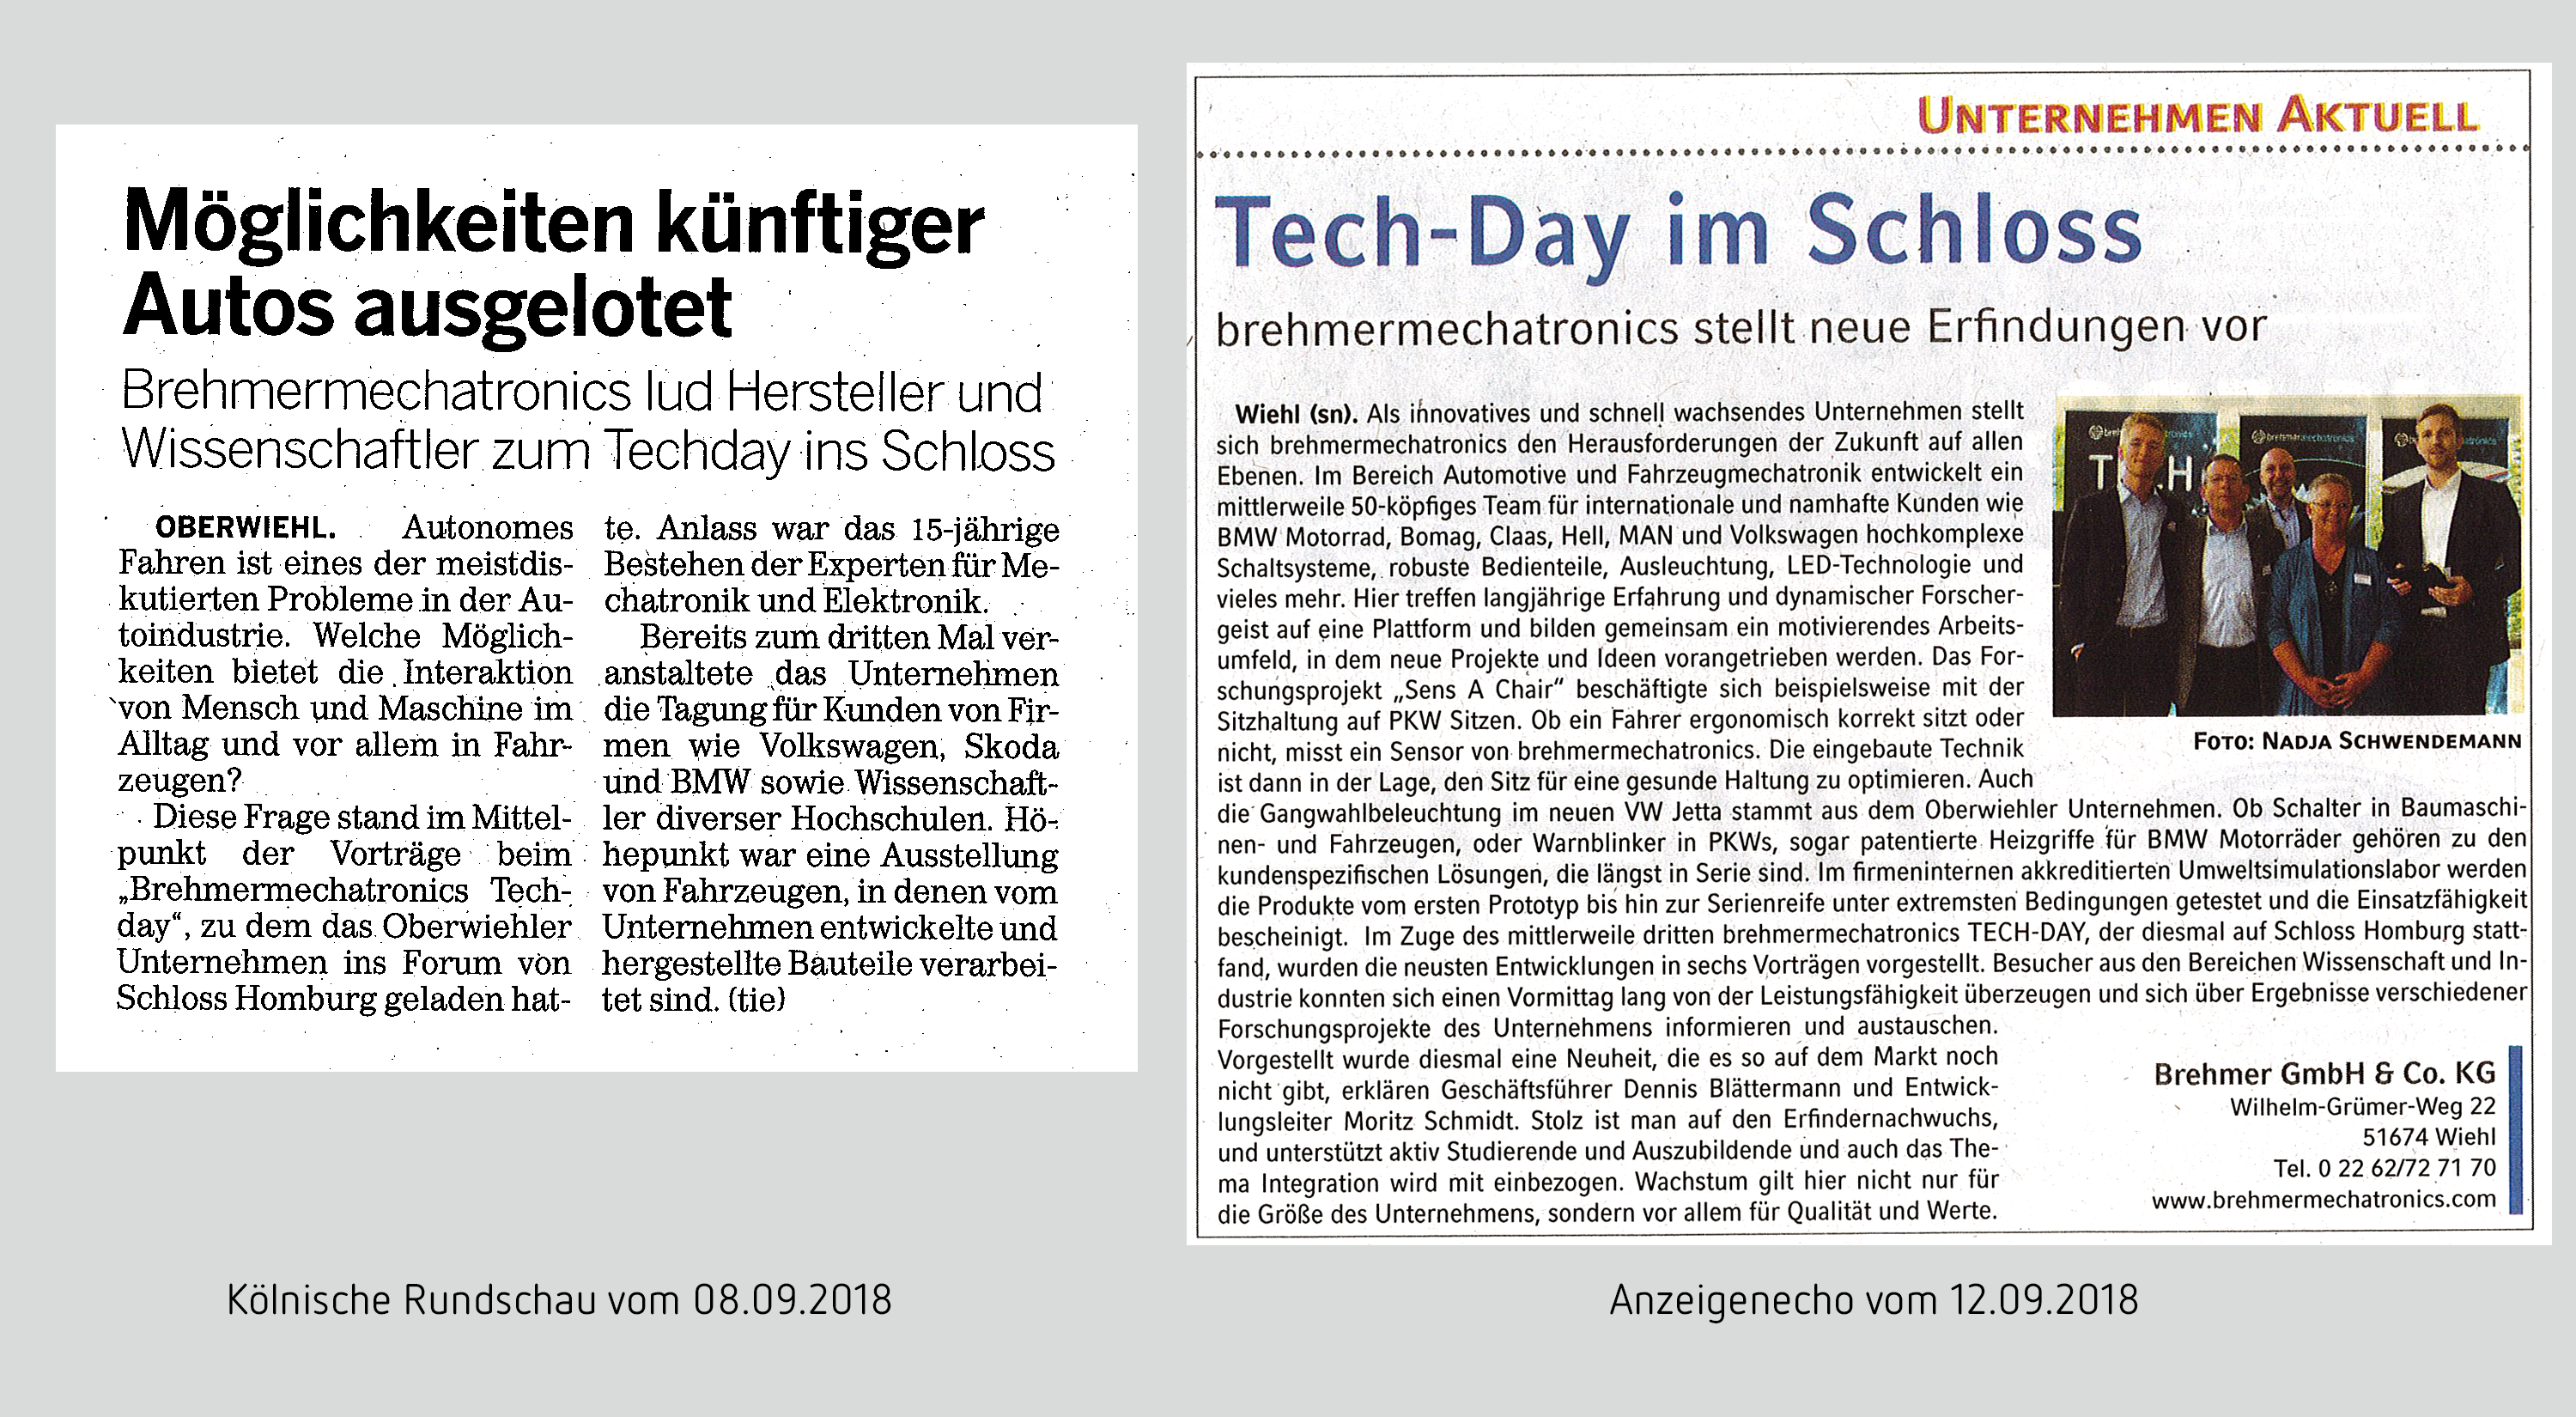 September 2018: Two press articles about the TECH-DAY 2018